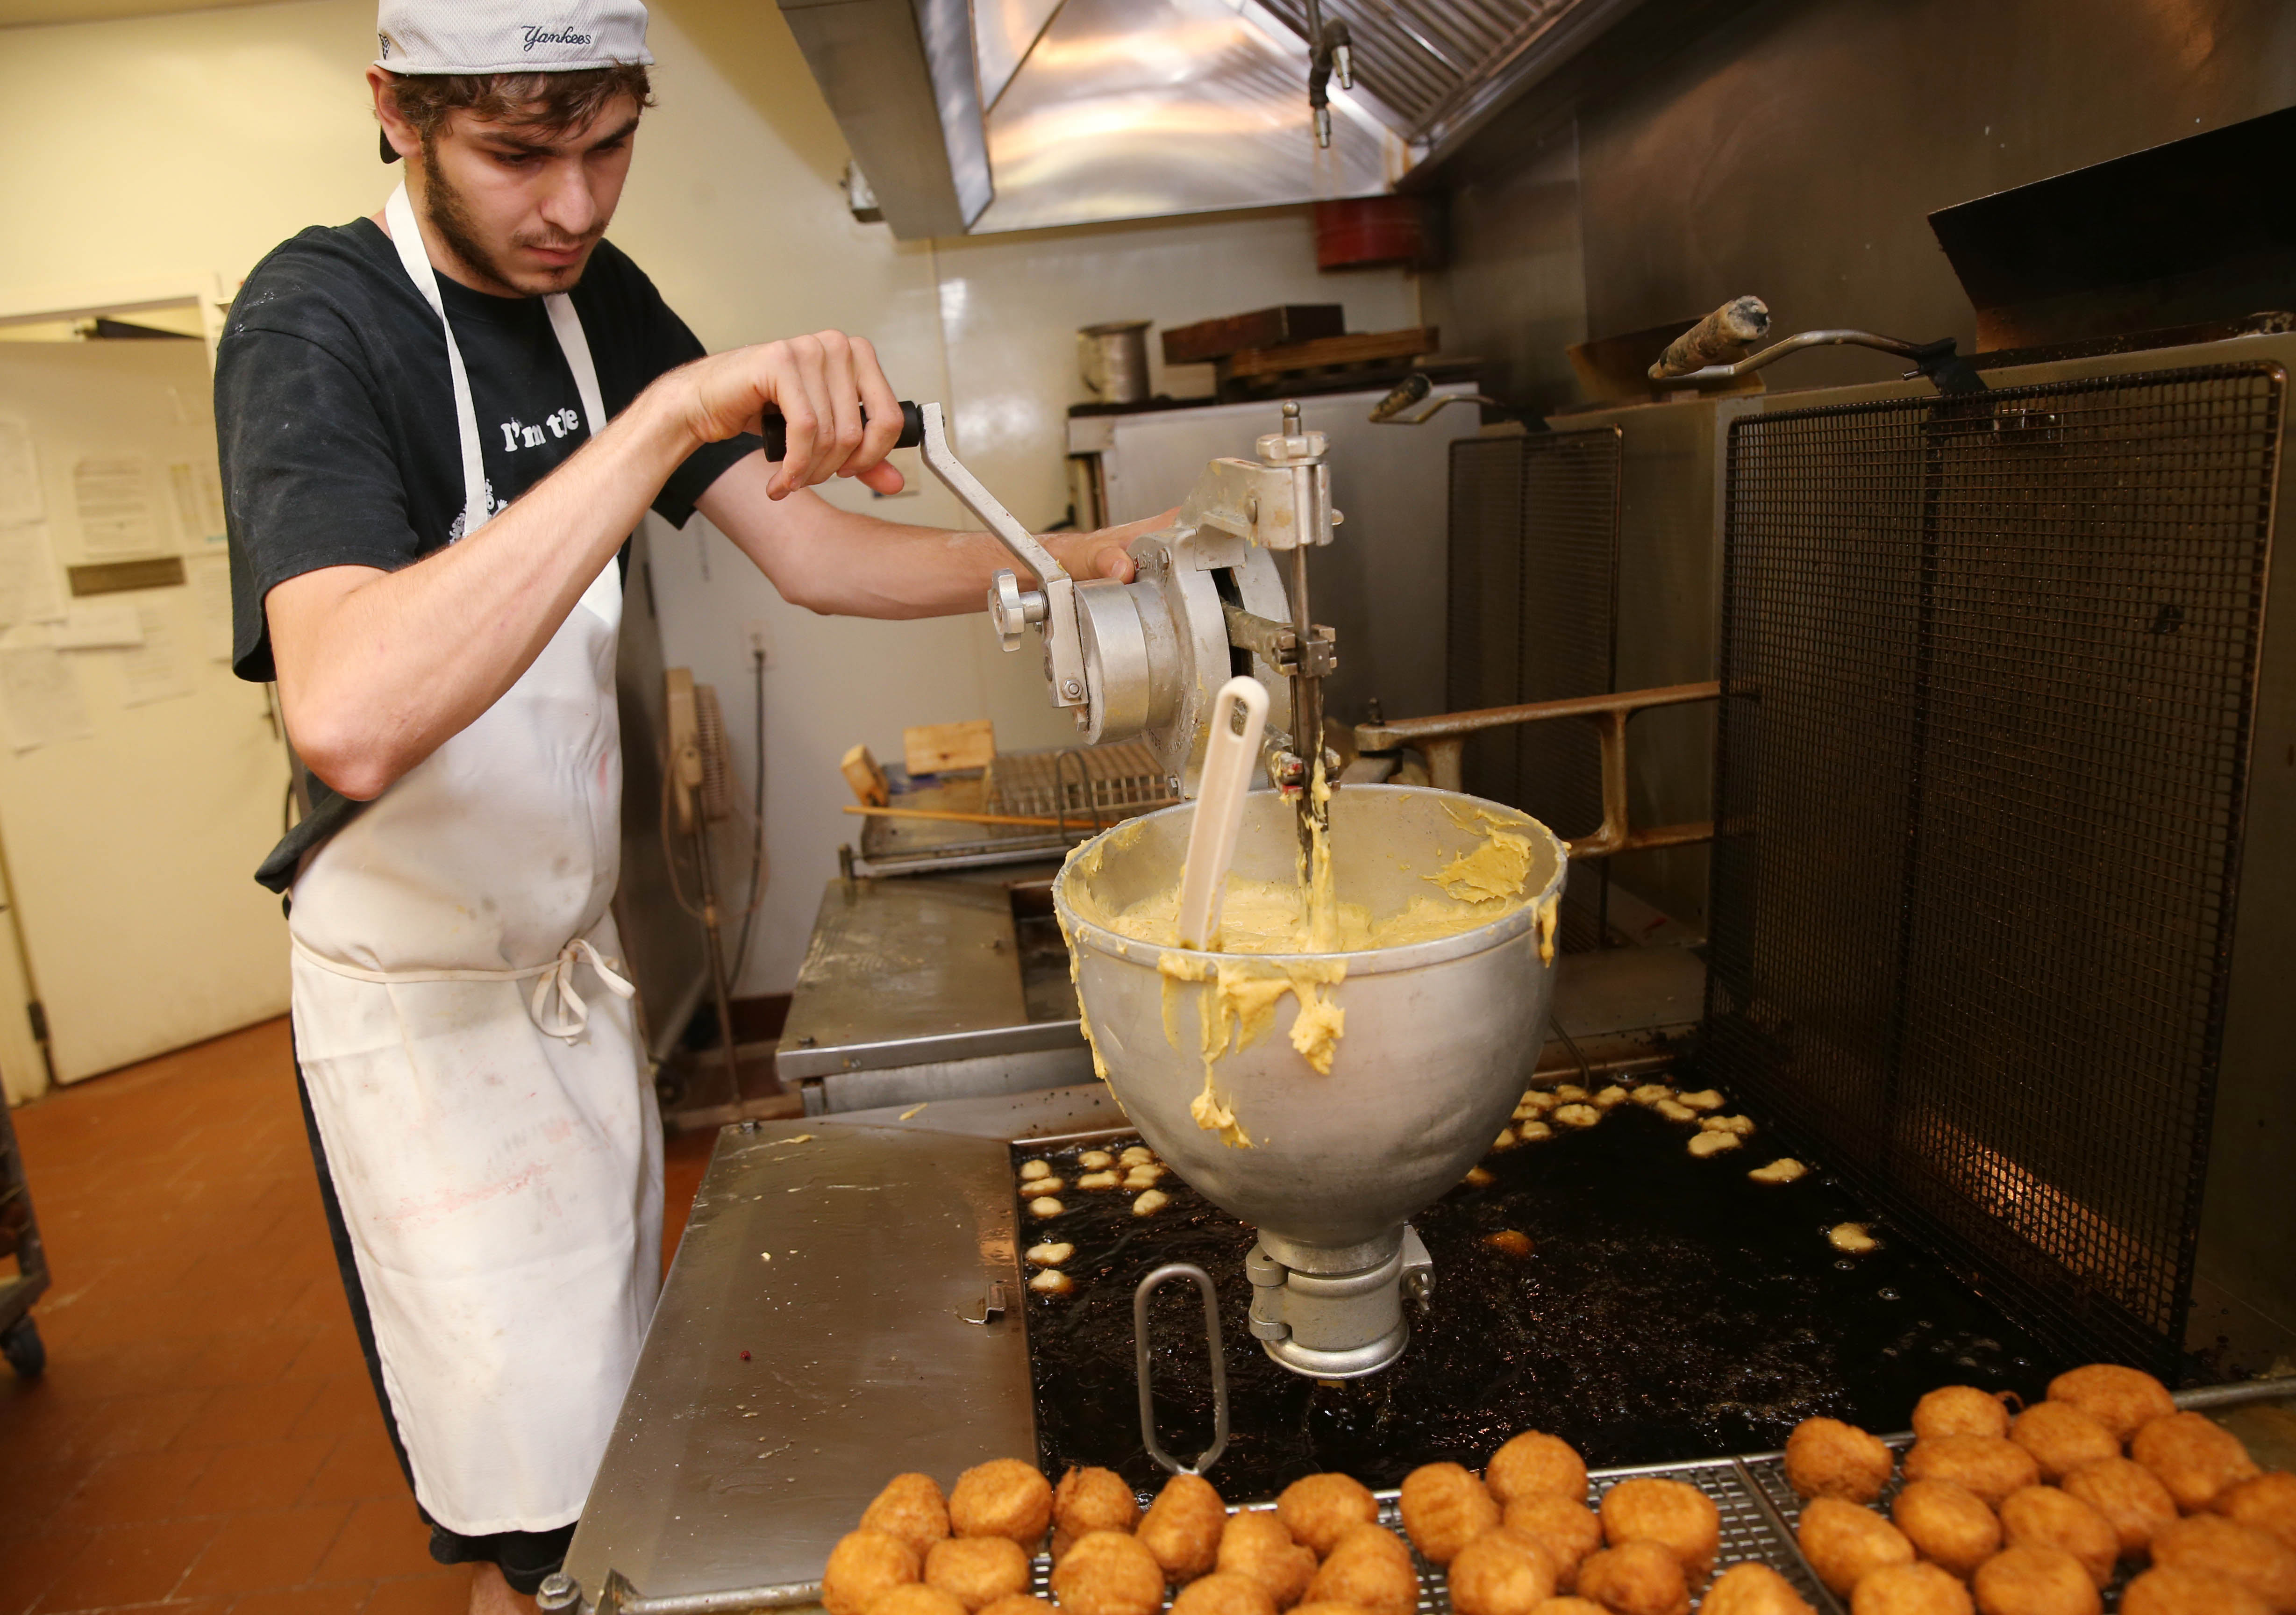 David Calleri uses the hopper to drop four doughnut holes into the oil at a time. (Sharon Cantillon/Buffalo News)